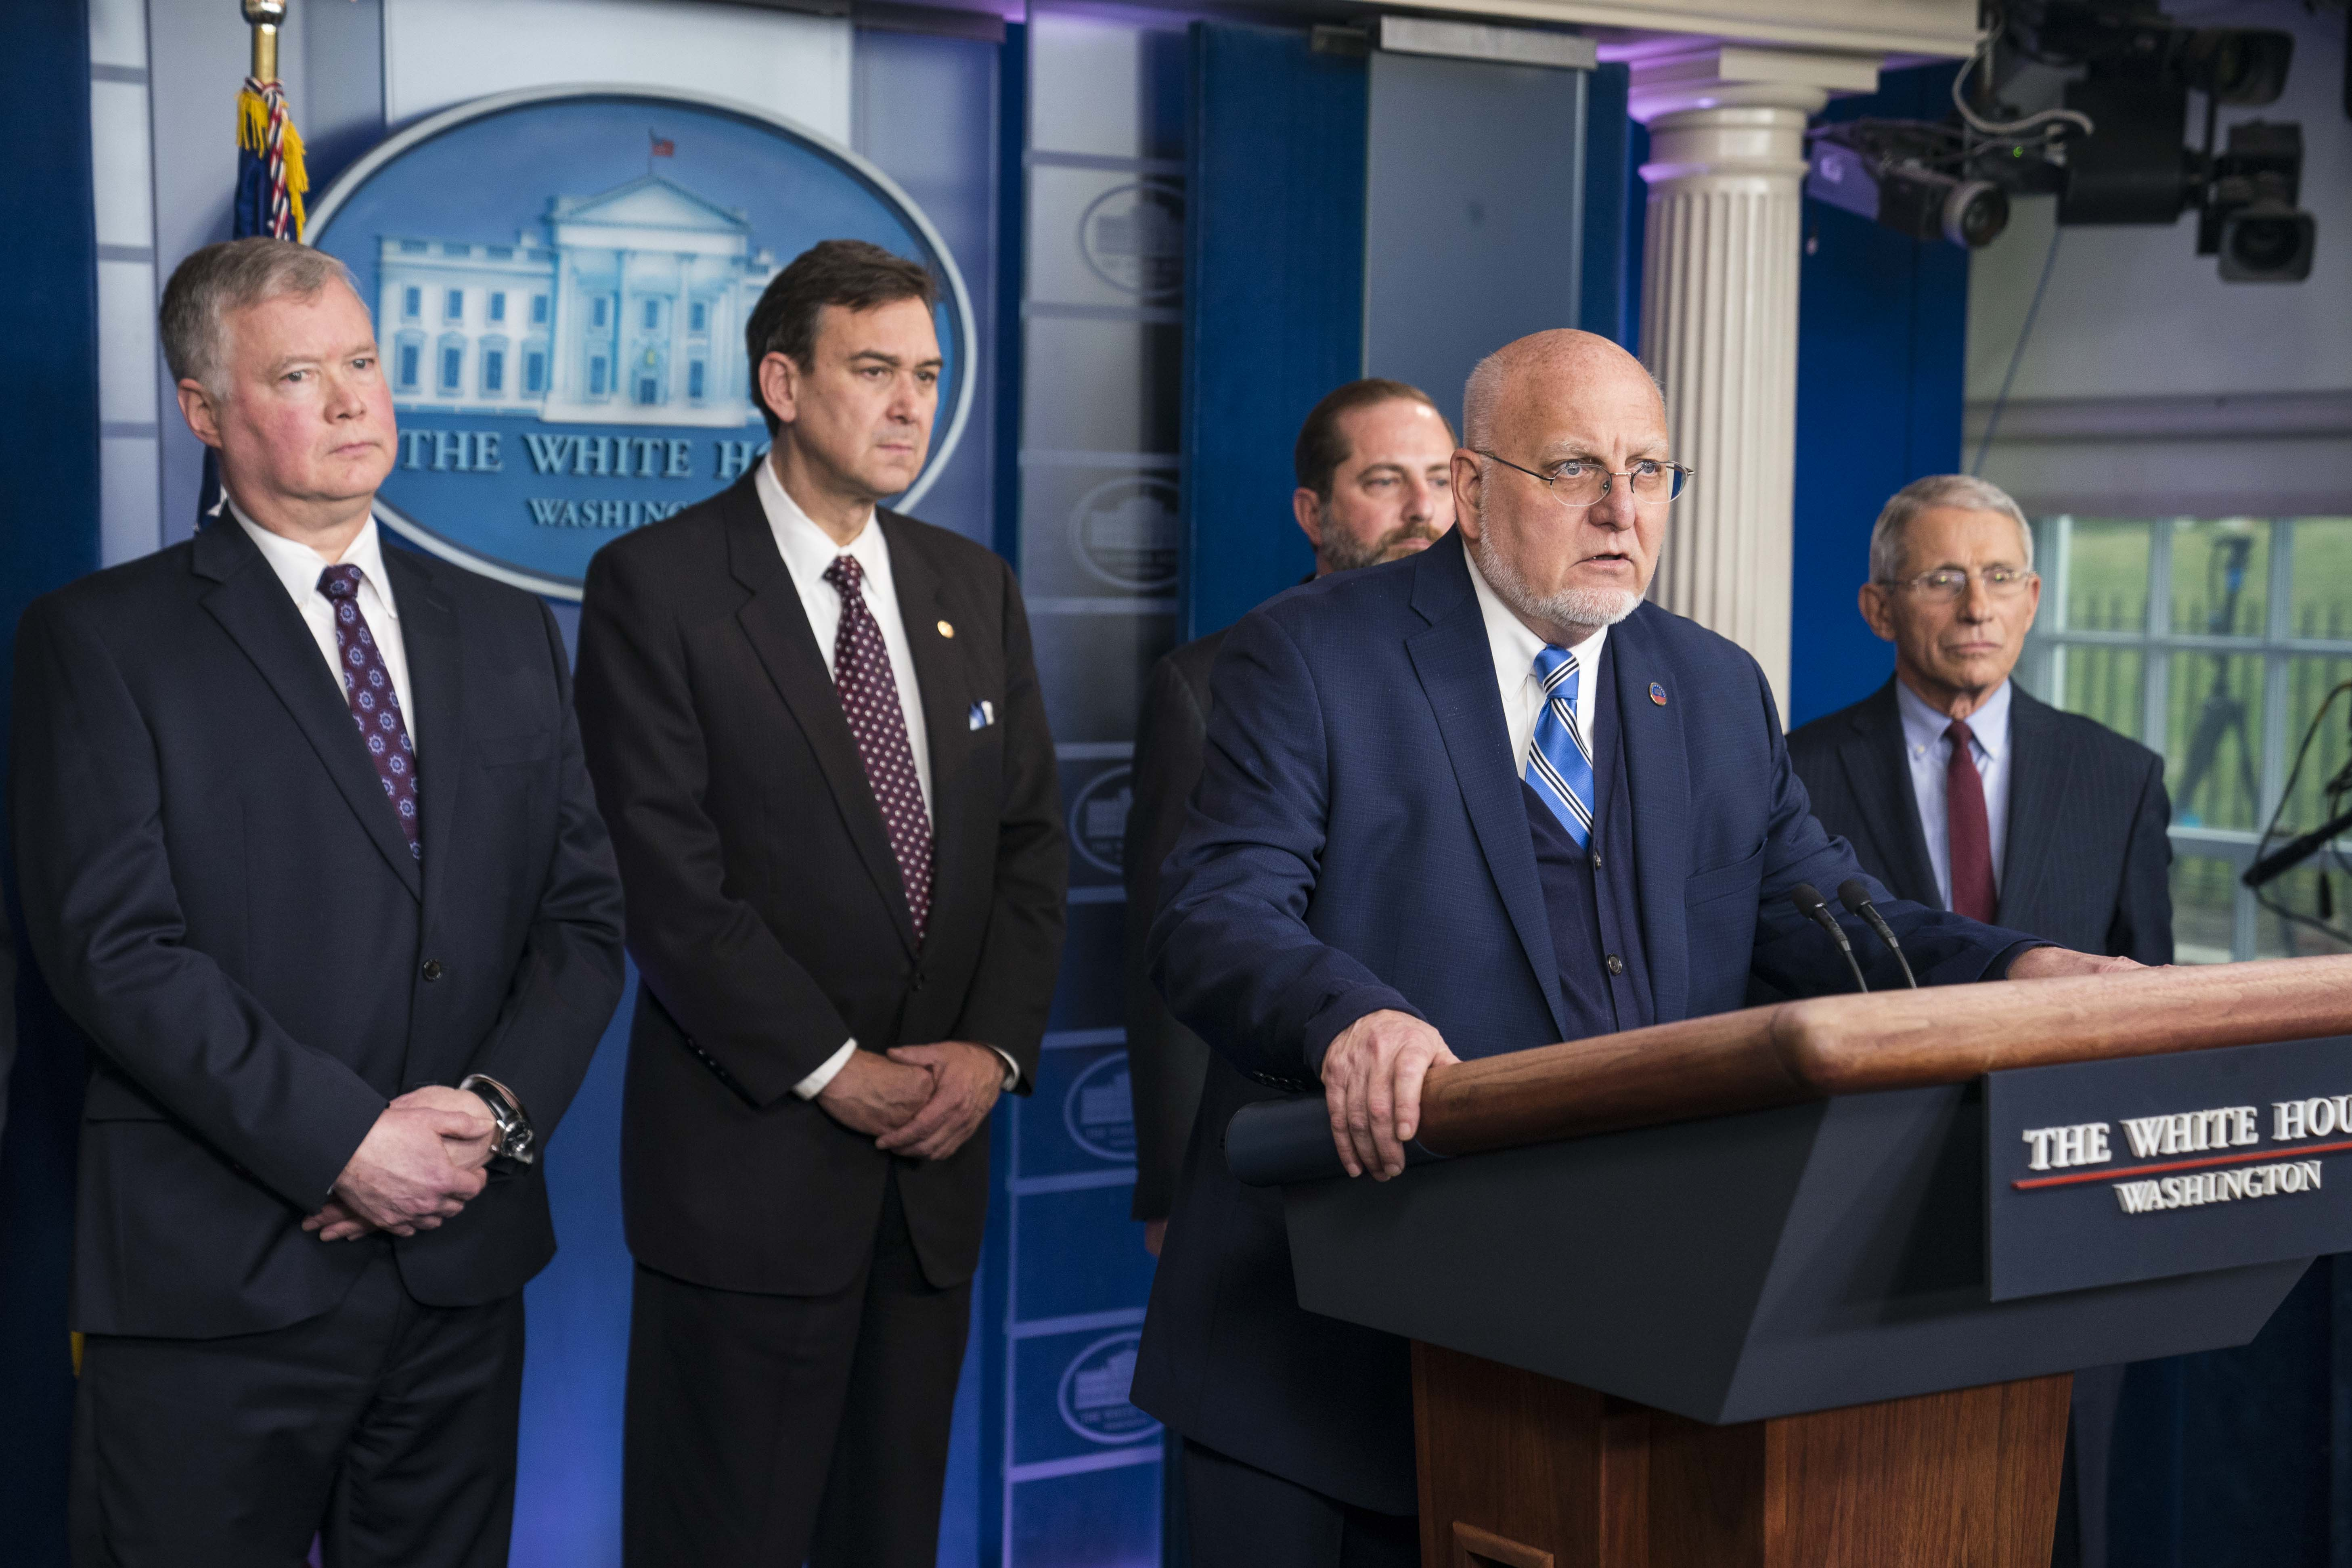 Centers for Disease Control and Prevention (CDC) Director Dr. Robert Redfield, and members of the Trump Administration's Coronavirus Task Force hold a press briefing on Friday, January 31.